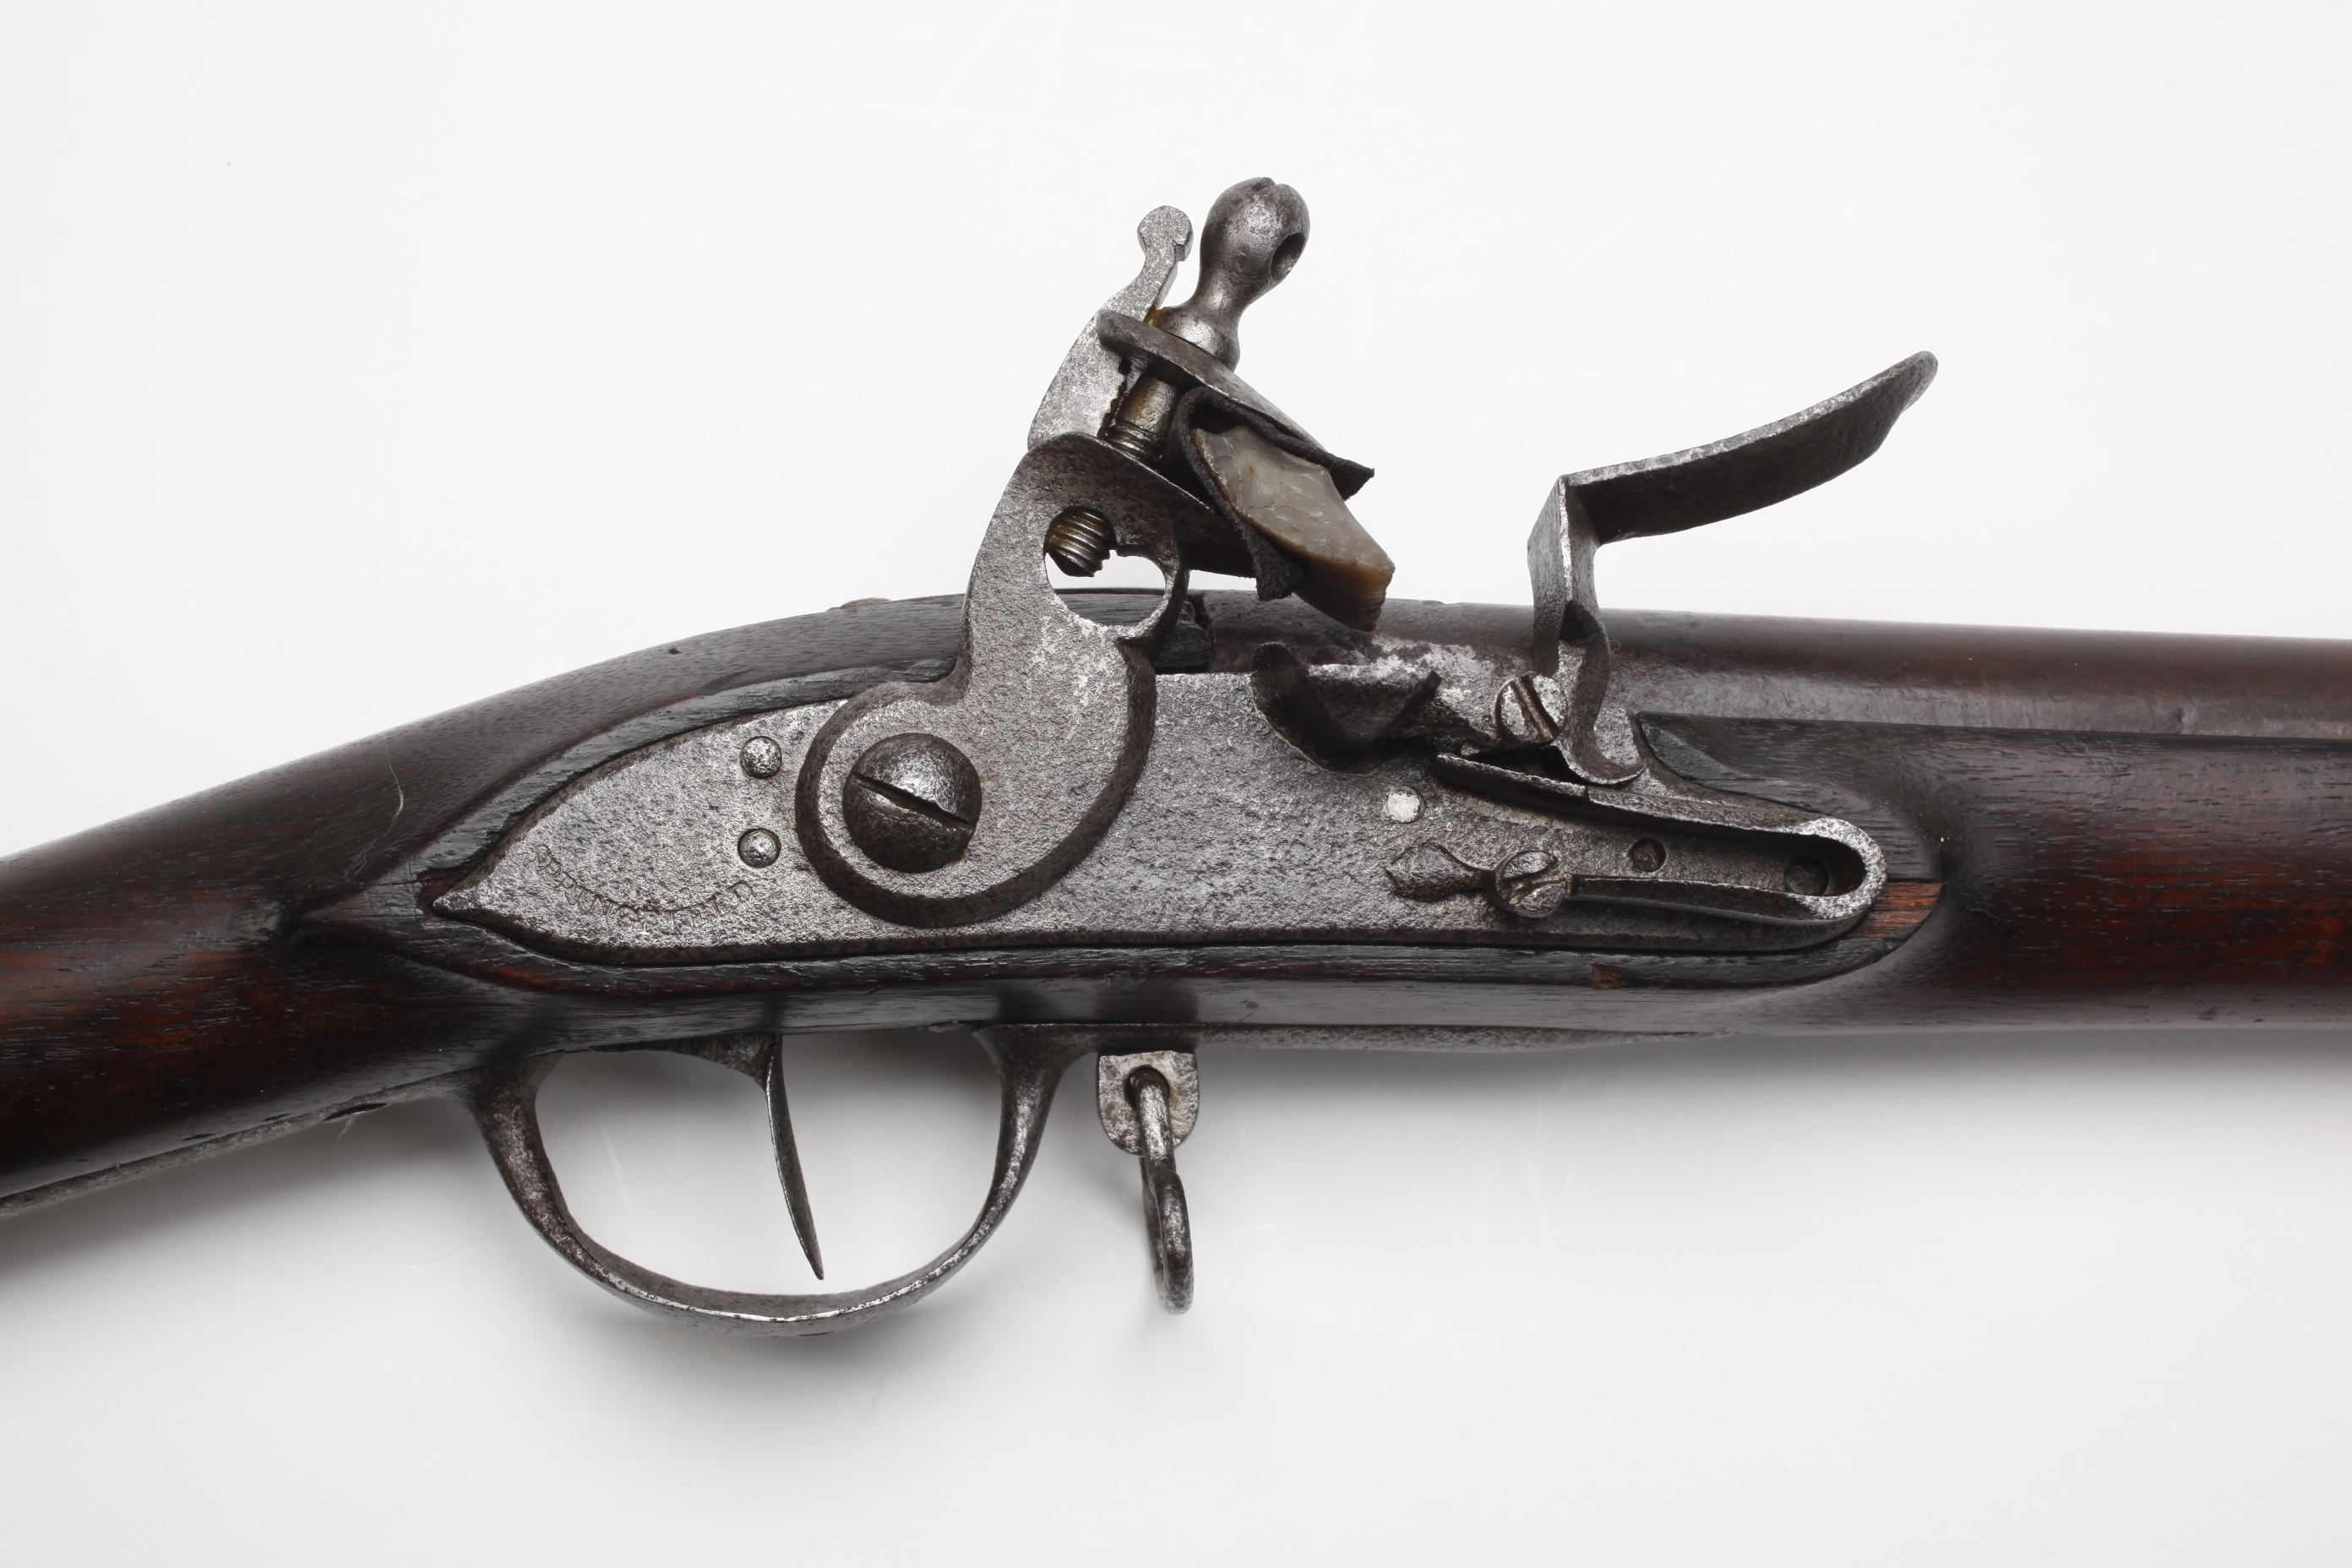 U.S. Springfield Model 1795 Flintlock Musket